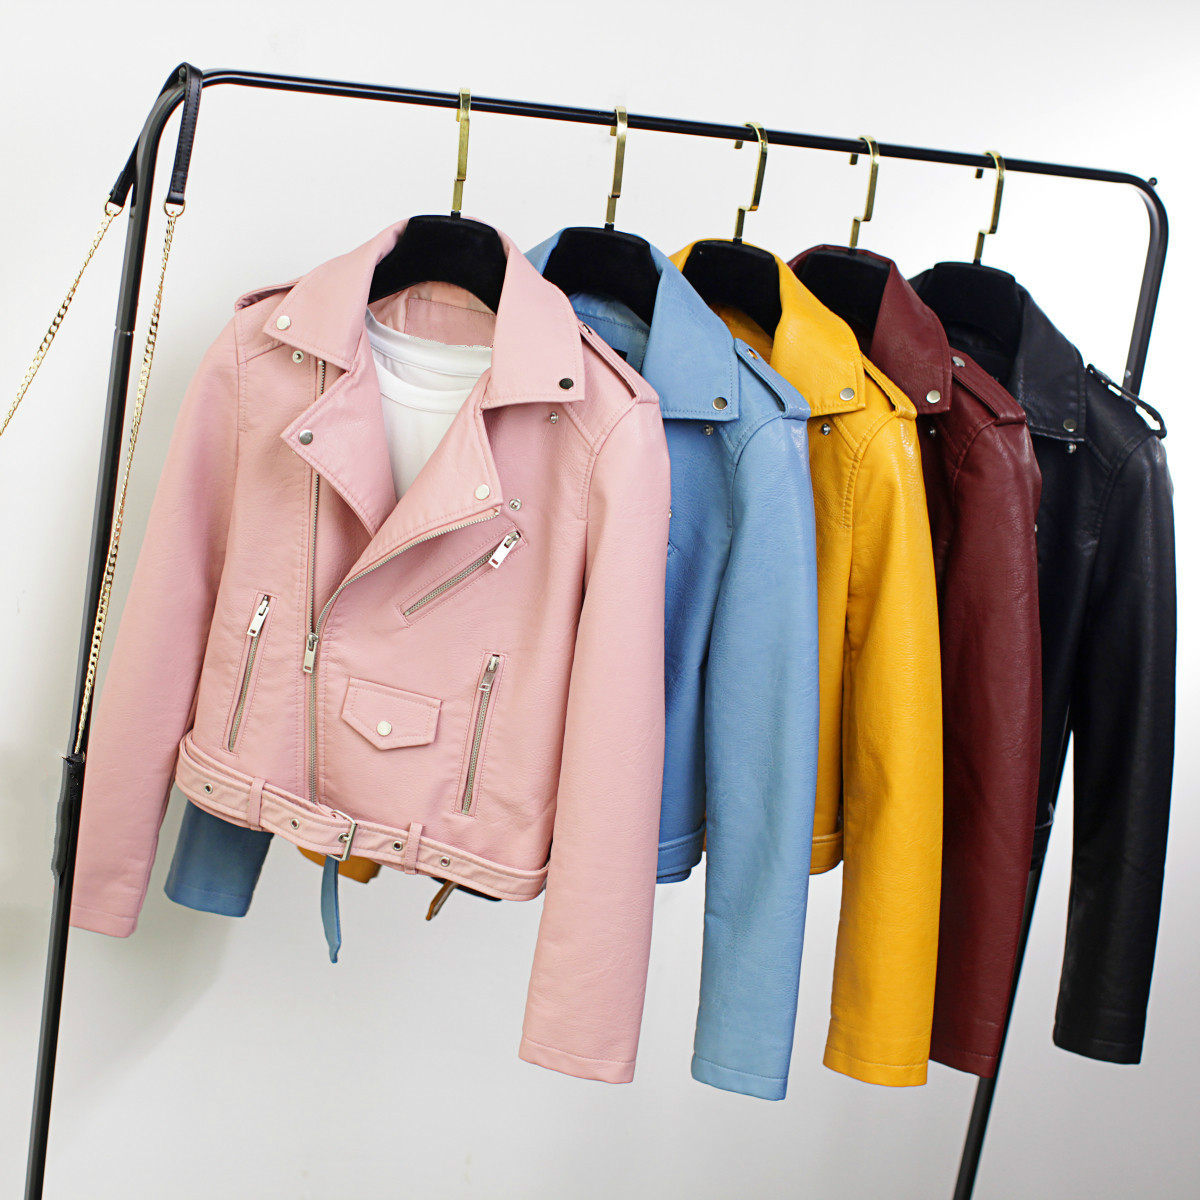 Spring Women Faux   Leather   Moto Jacket Short Motorcycle Pu Jacket with Belt Cute Ladies Coat Female Streetwear Girls Outerwear